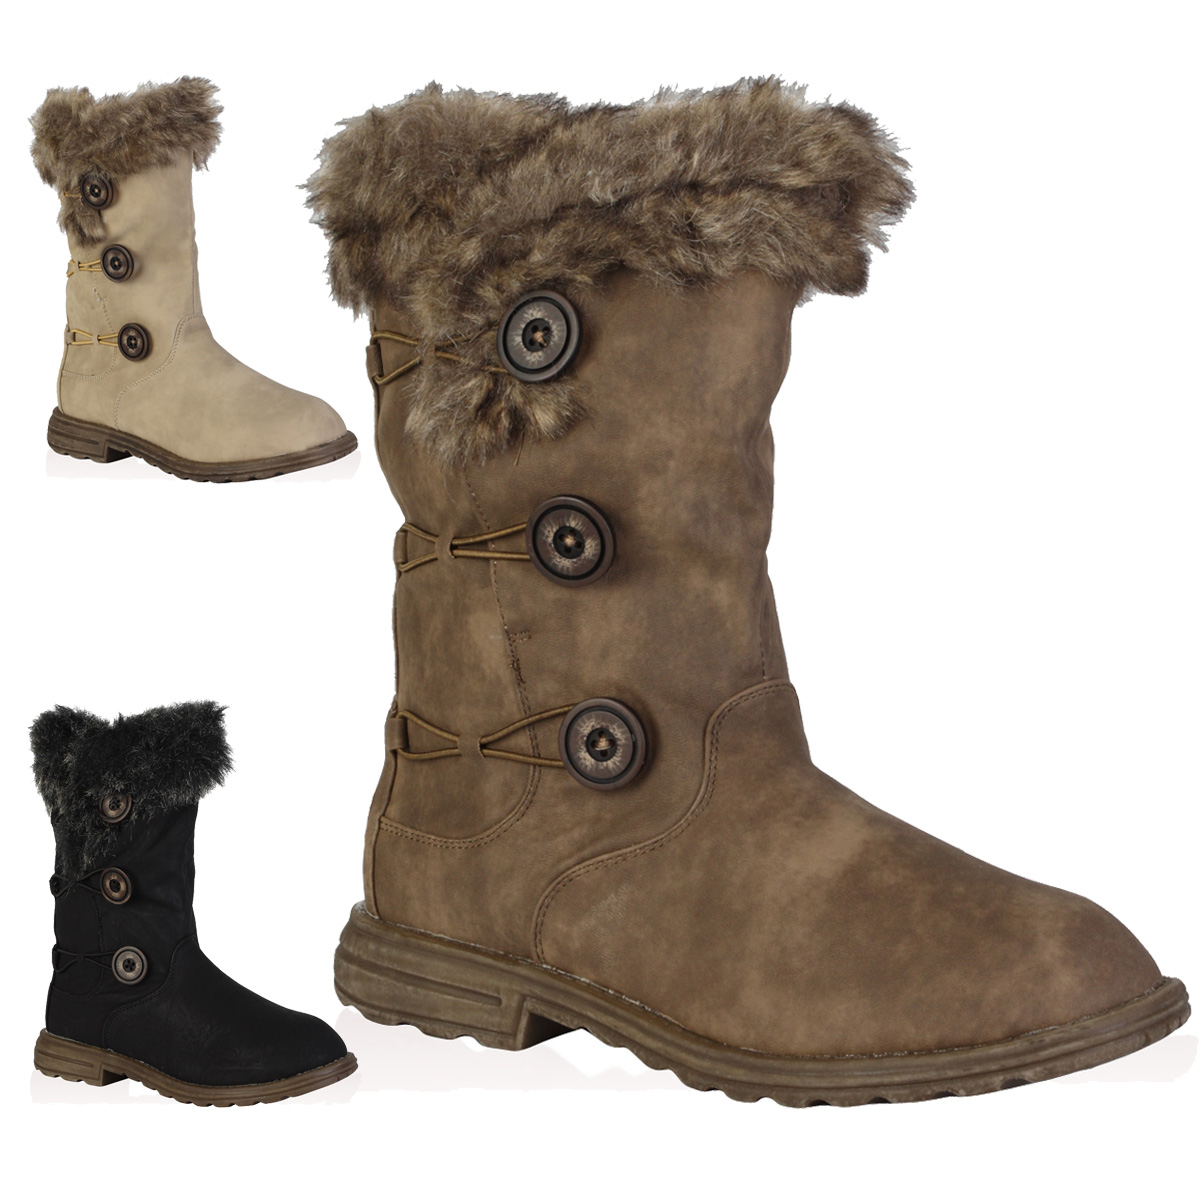 Walmart Faux Fur Lined Winter Boots | Santa Barbara Institute for ...